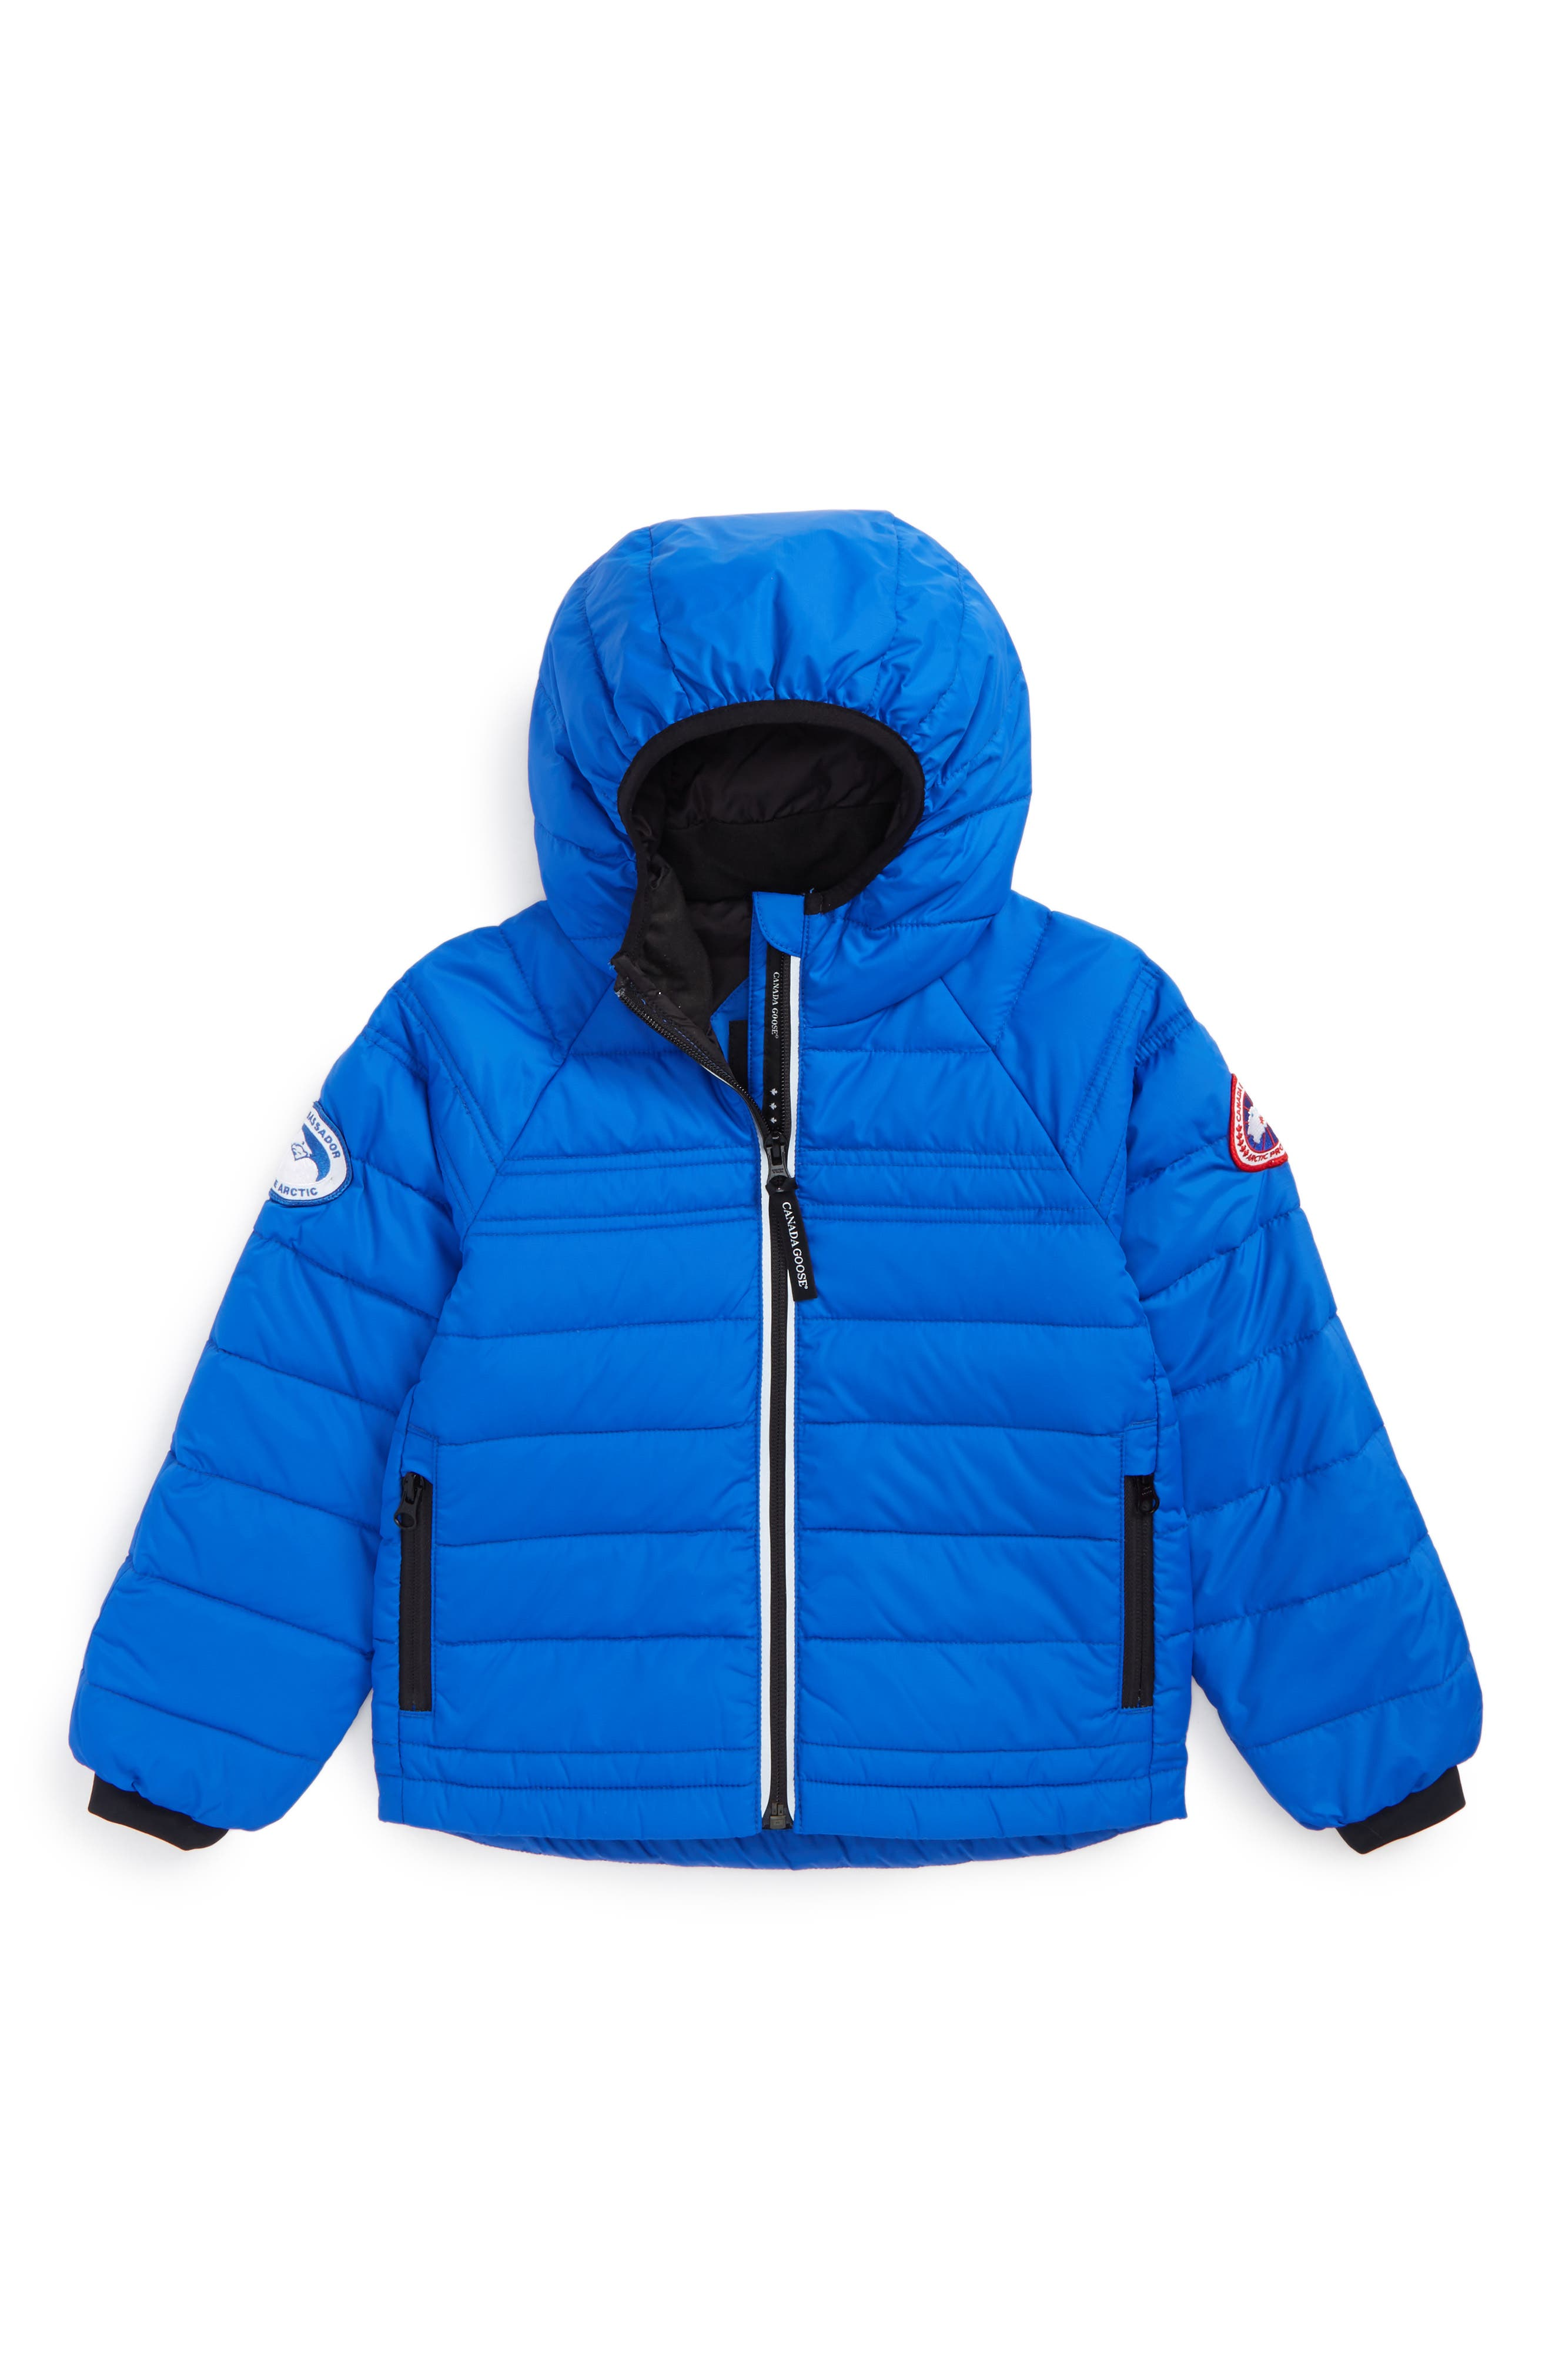 Main Image - Canada Goose Bobcat Water Resistant Hooded Down Jacket (Toddler Kids & Little Kids)